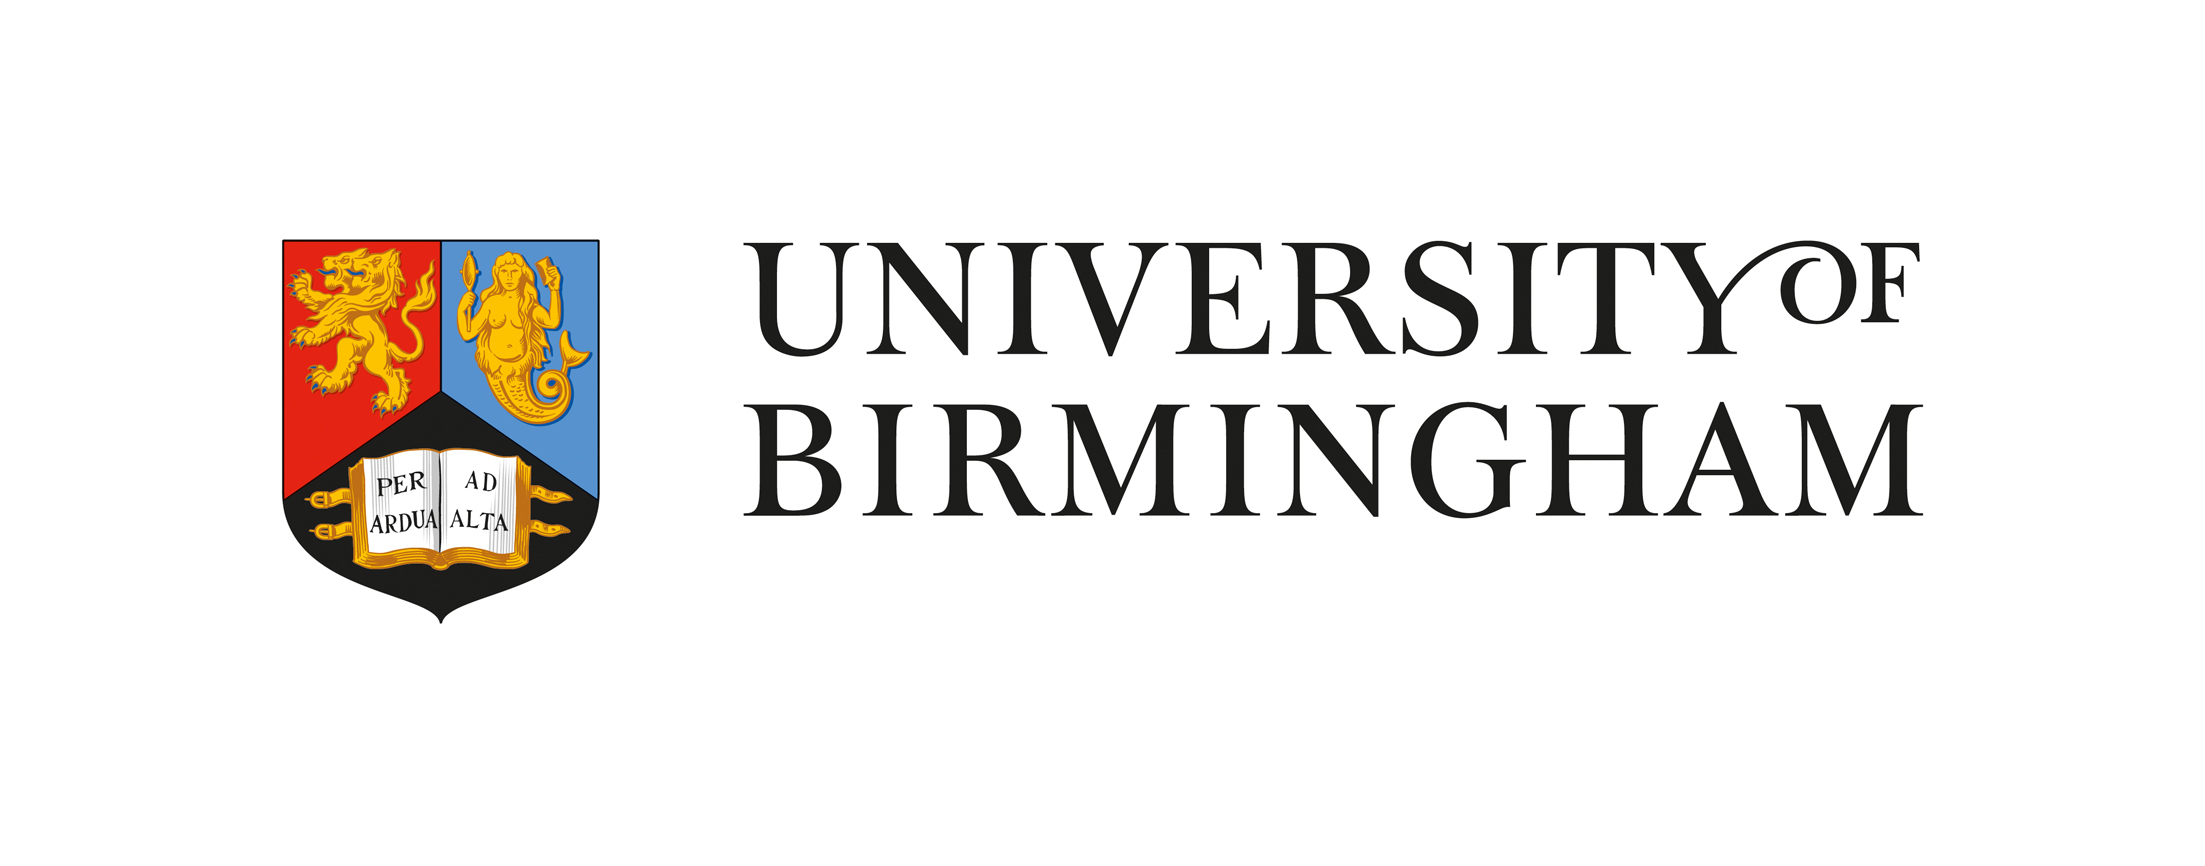 Full shield and text logo of the University of Birmingham - Shield is split into three quadrants top left hand side is read with a stylised golden double headed lion, the right hand side quadrant is light blue with a stylised golden mermaid holding a mirror, the bottom quadrant is black with a leather bound book with straps open to a double page spread reading